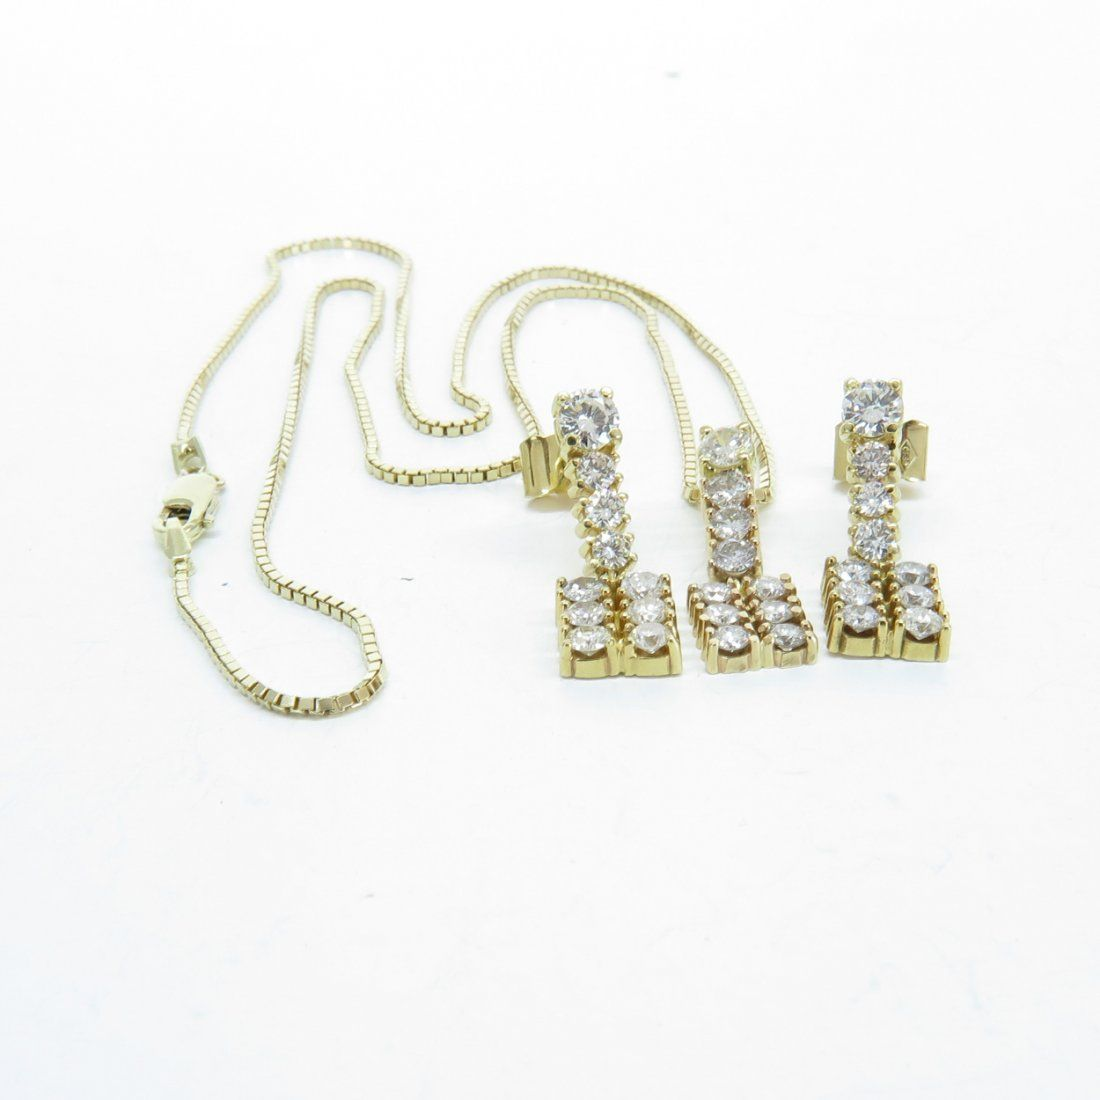 14KG Diamond Necklace and Earrings 2 Carat Total Weight